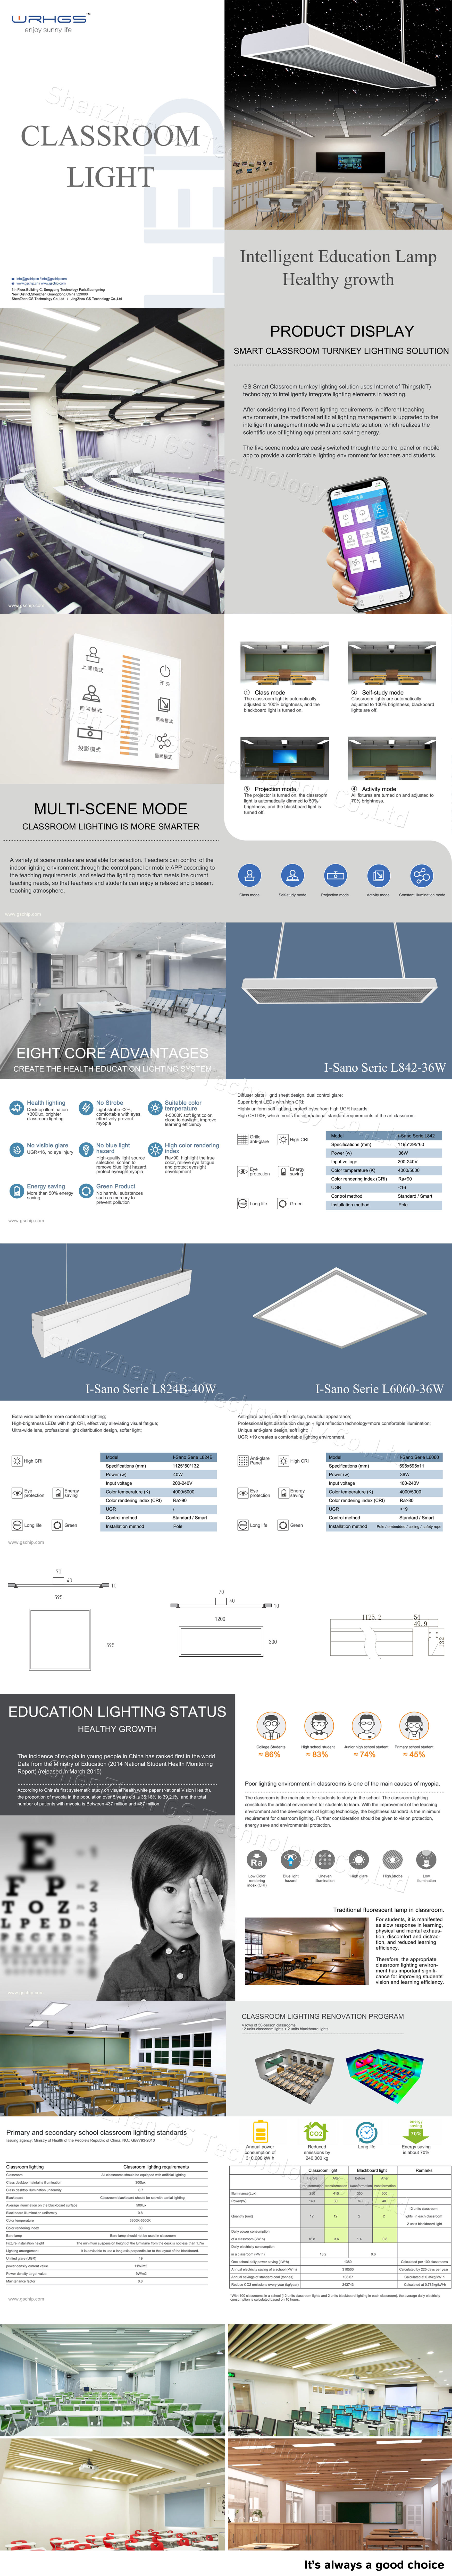 New designed led classroom linear lights anti glare 36w 40w office educational low bay led tube fixture RA 90